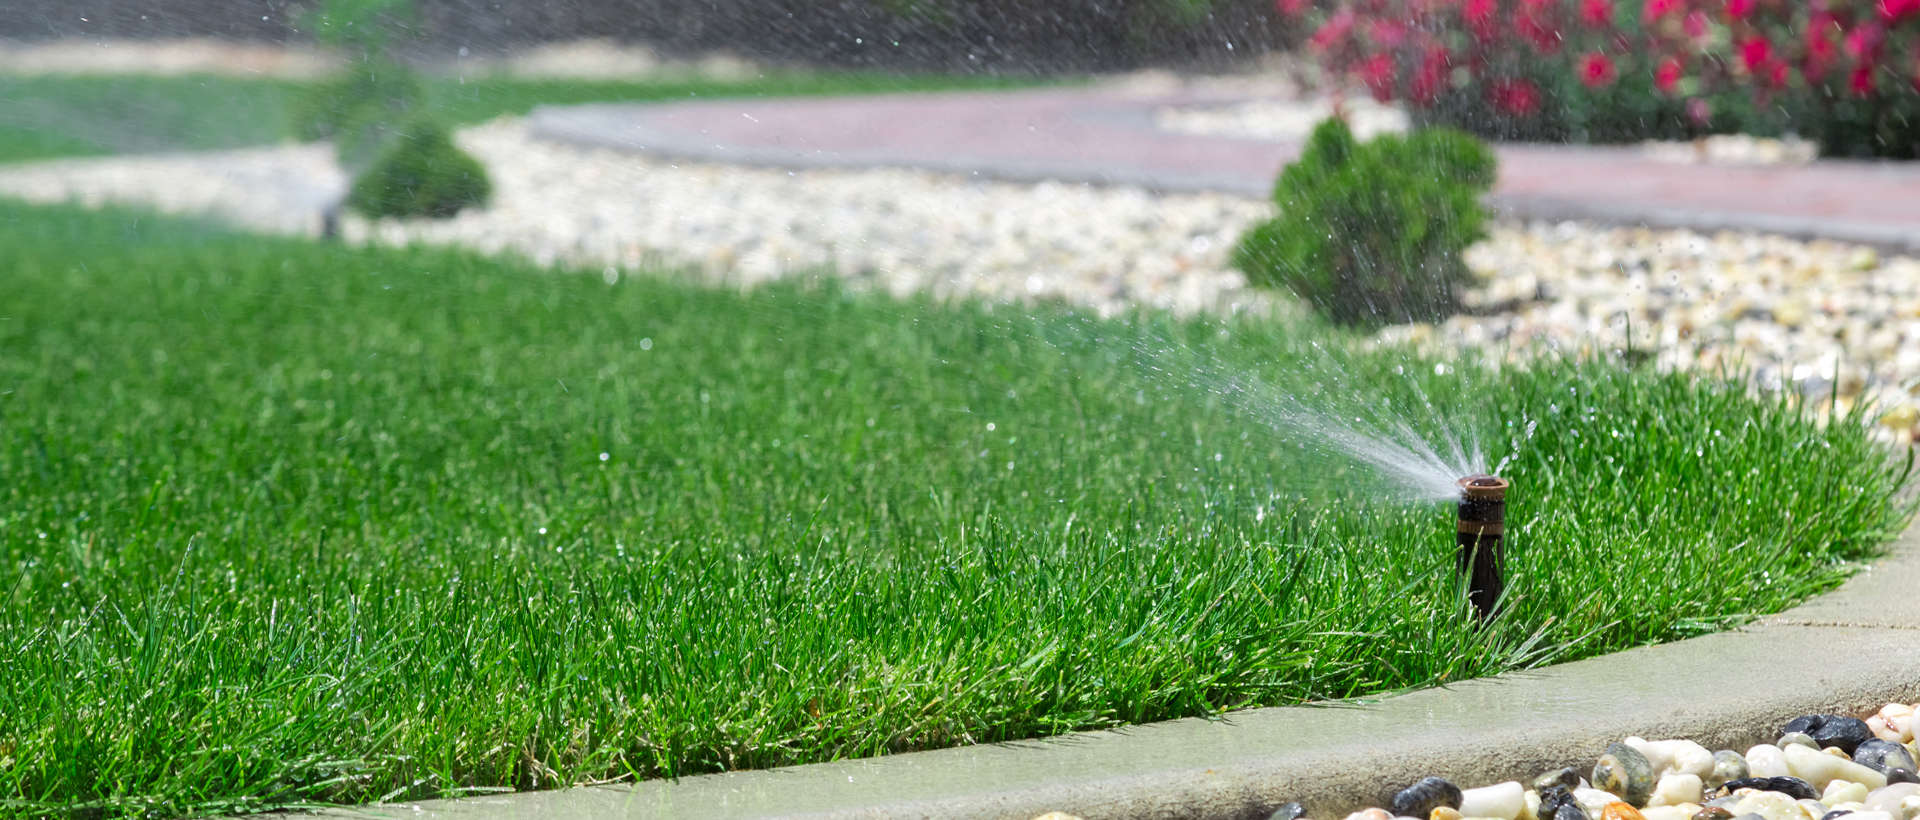 Sprinklers watering a yard.